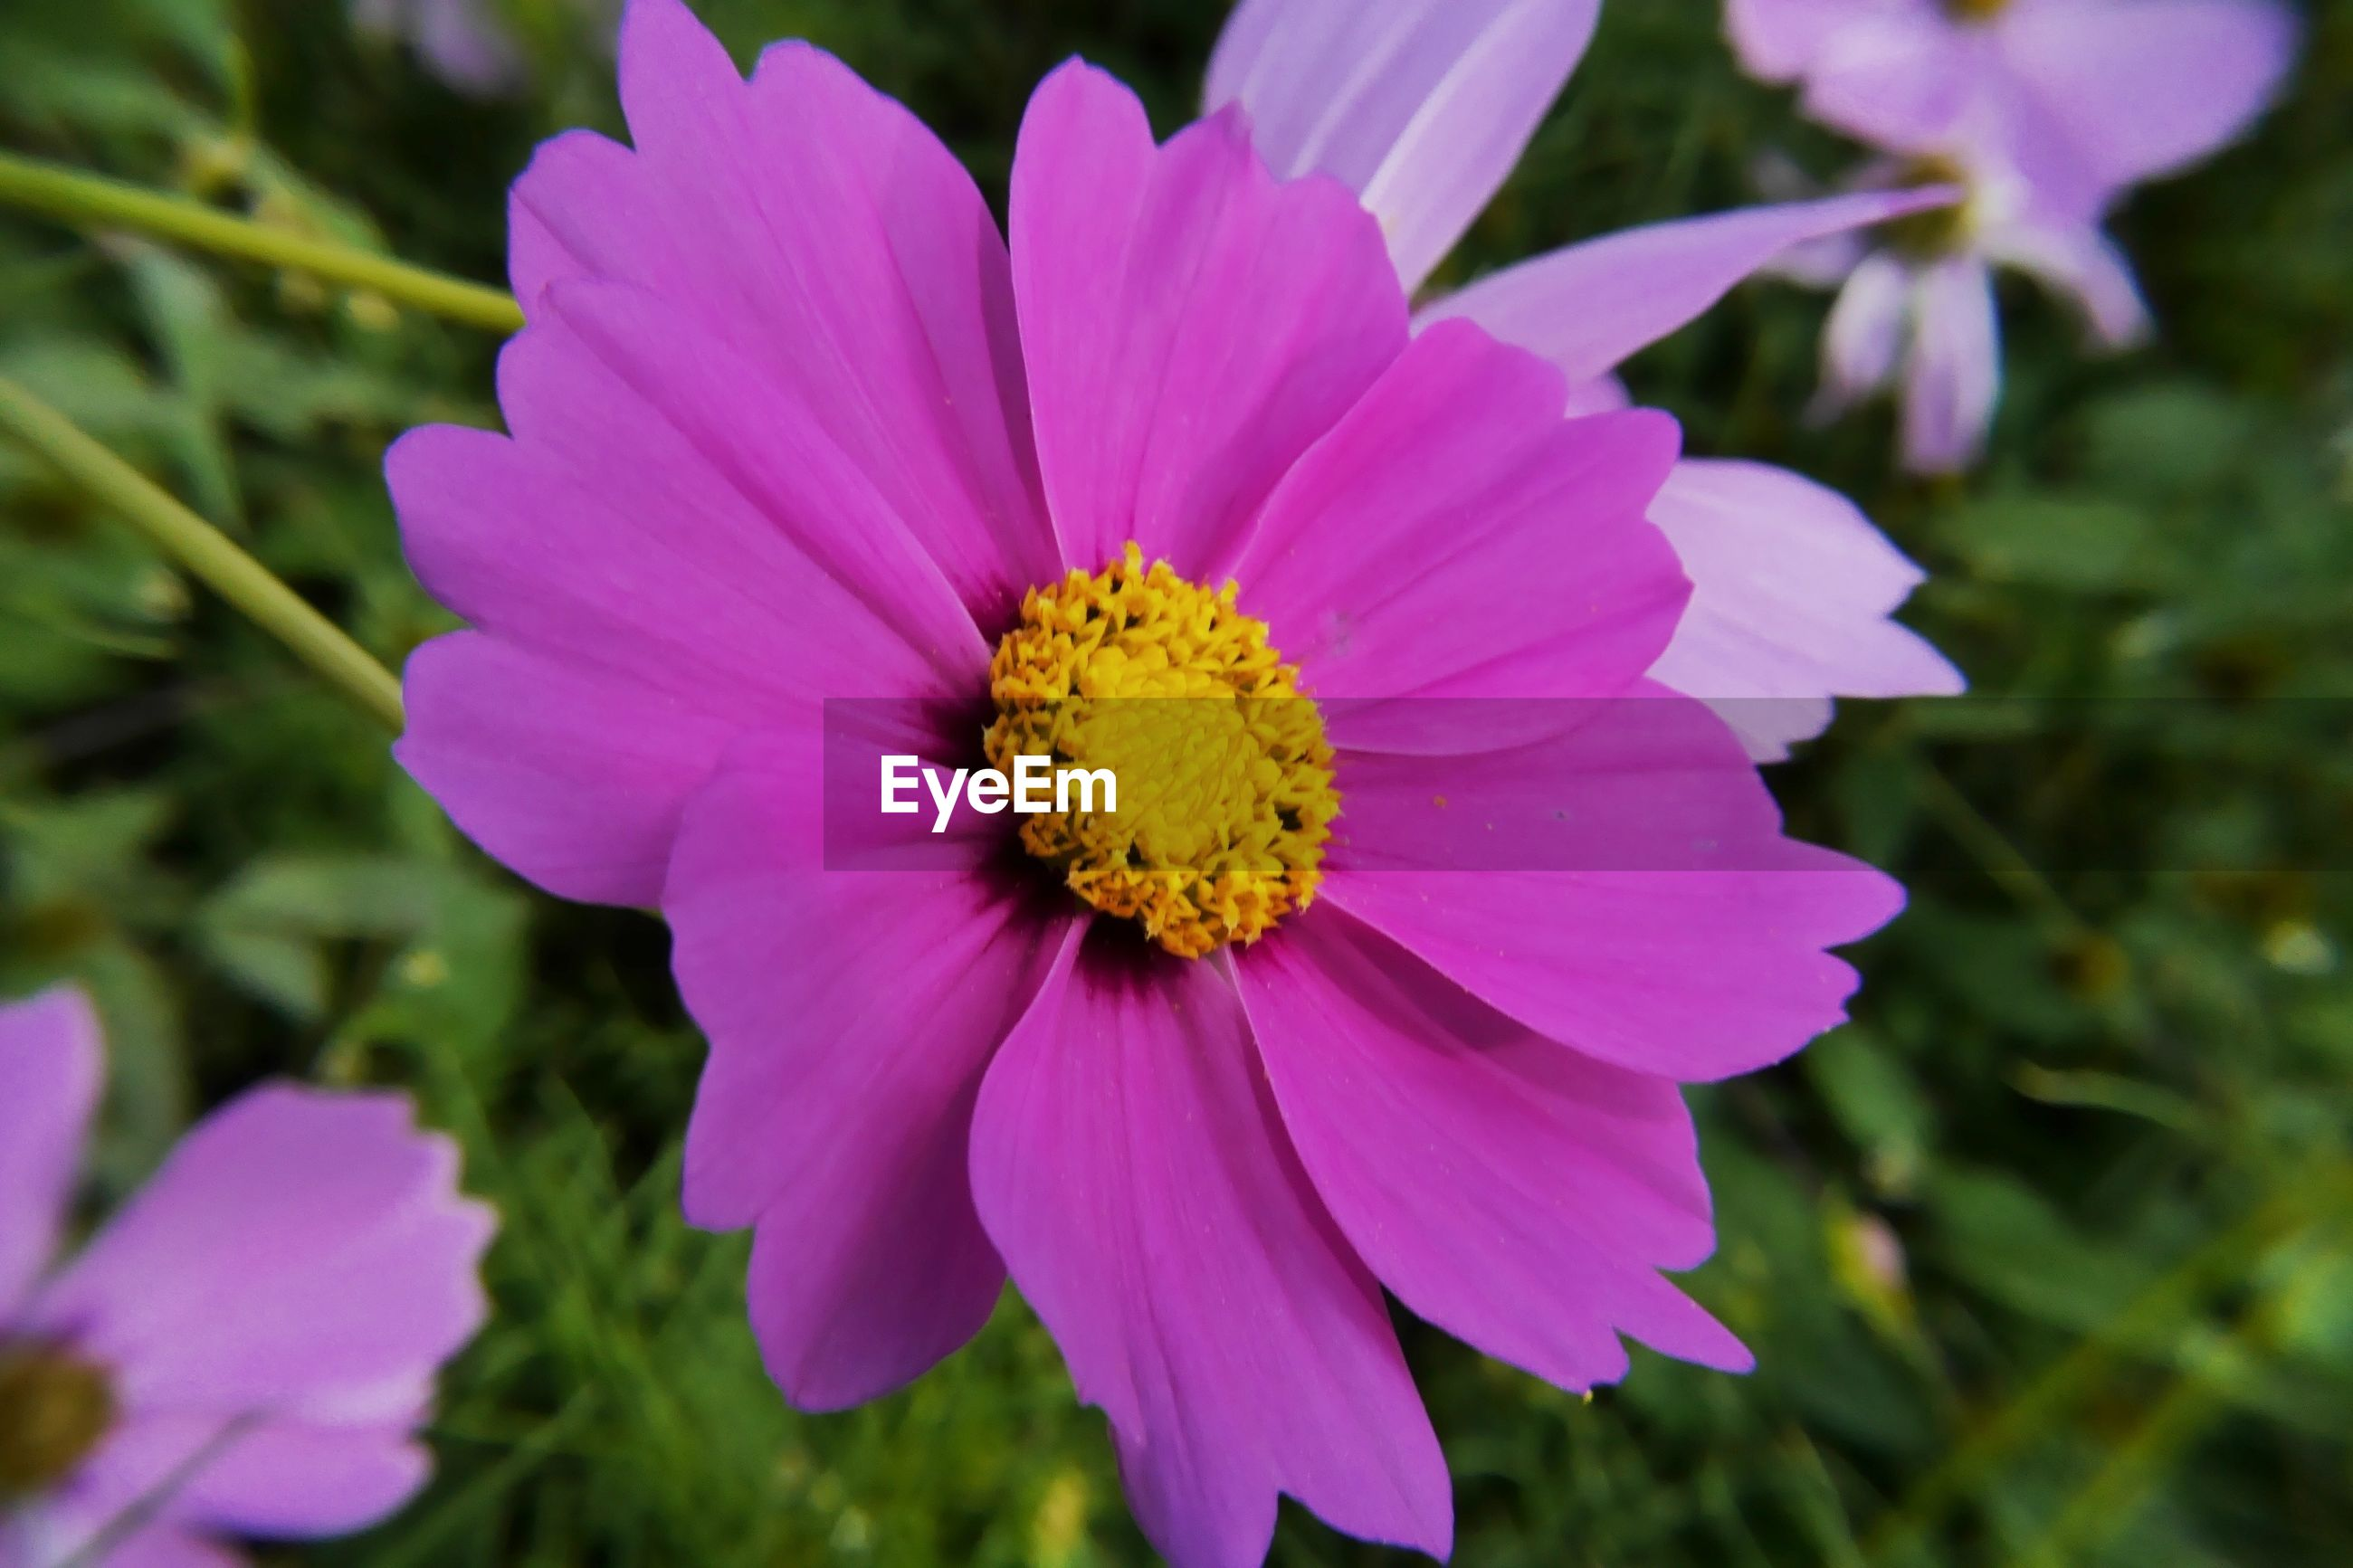 CLOSE-UP OF FRESH PINK DAISY FLOWER BLOOMING OUTDOORS